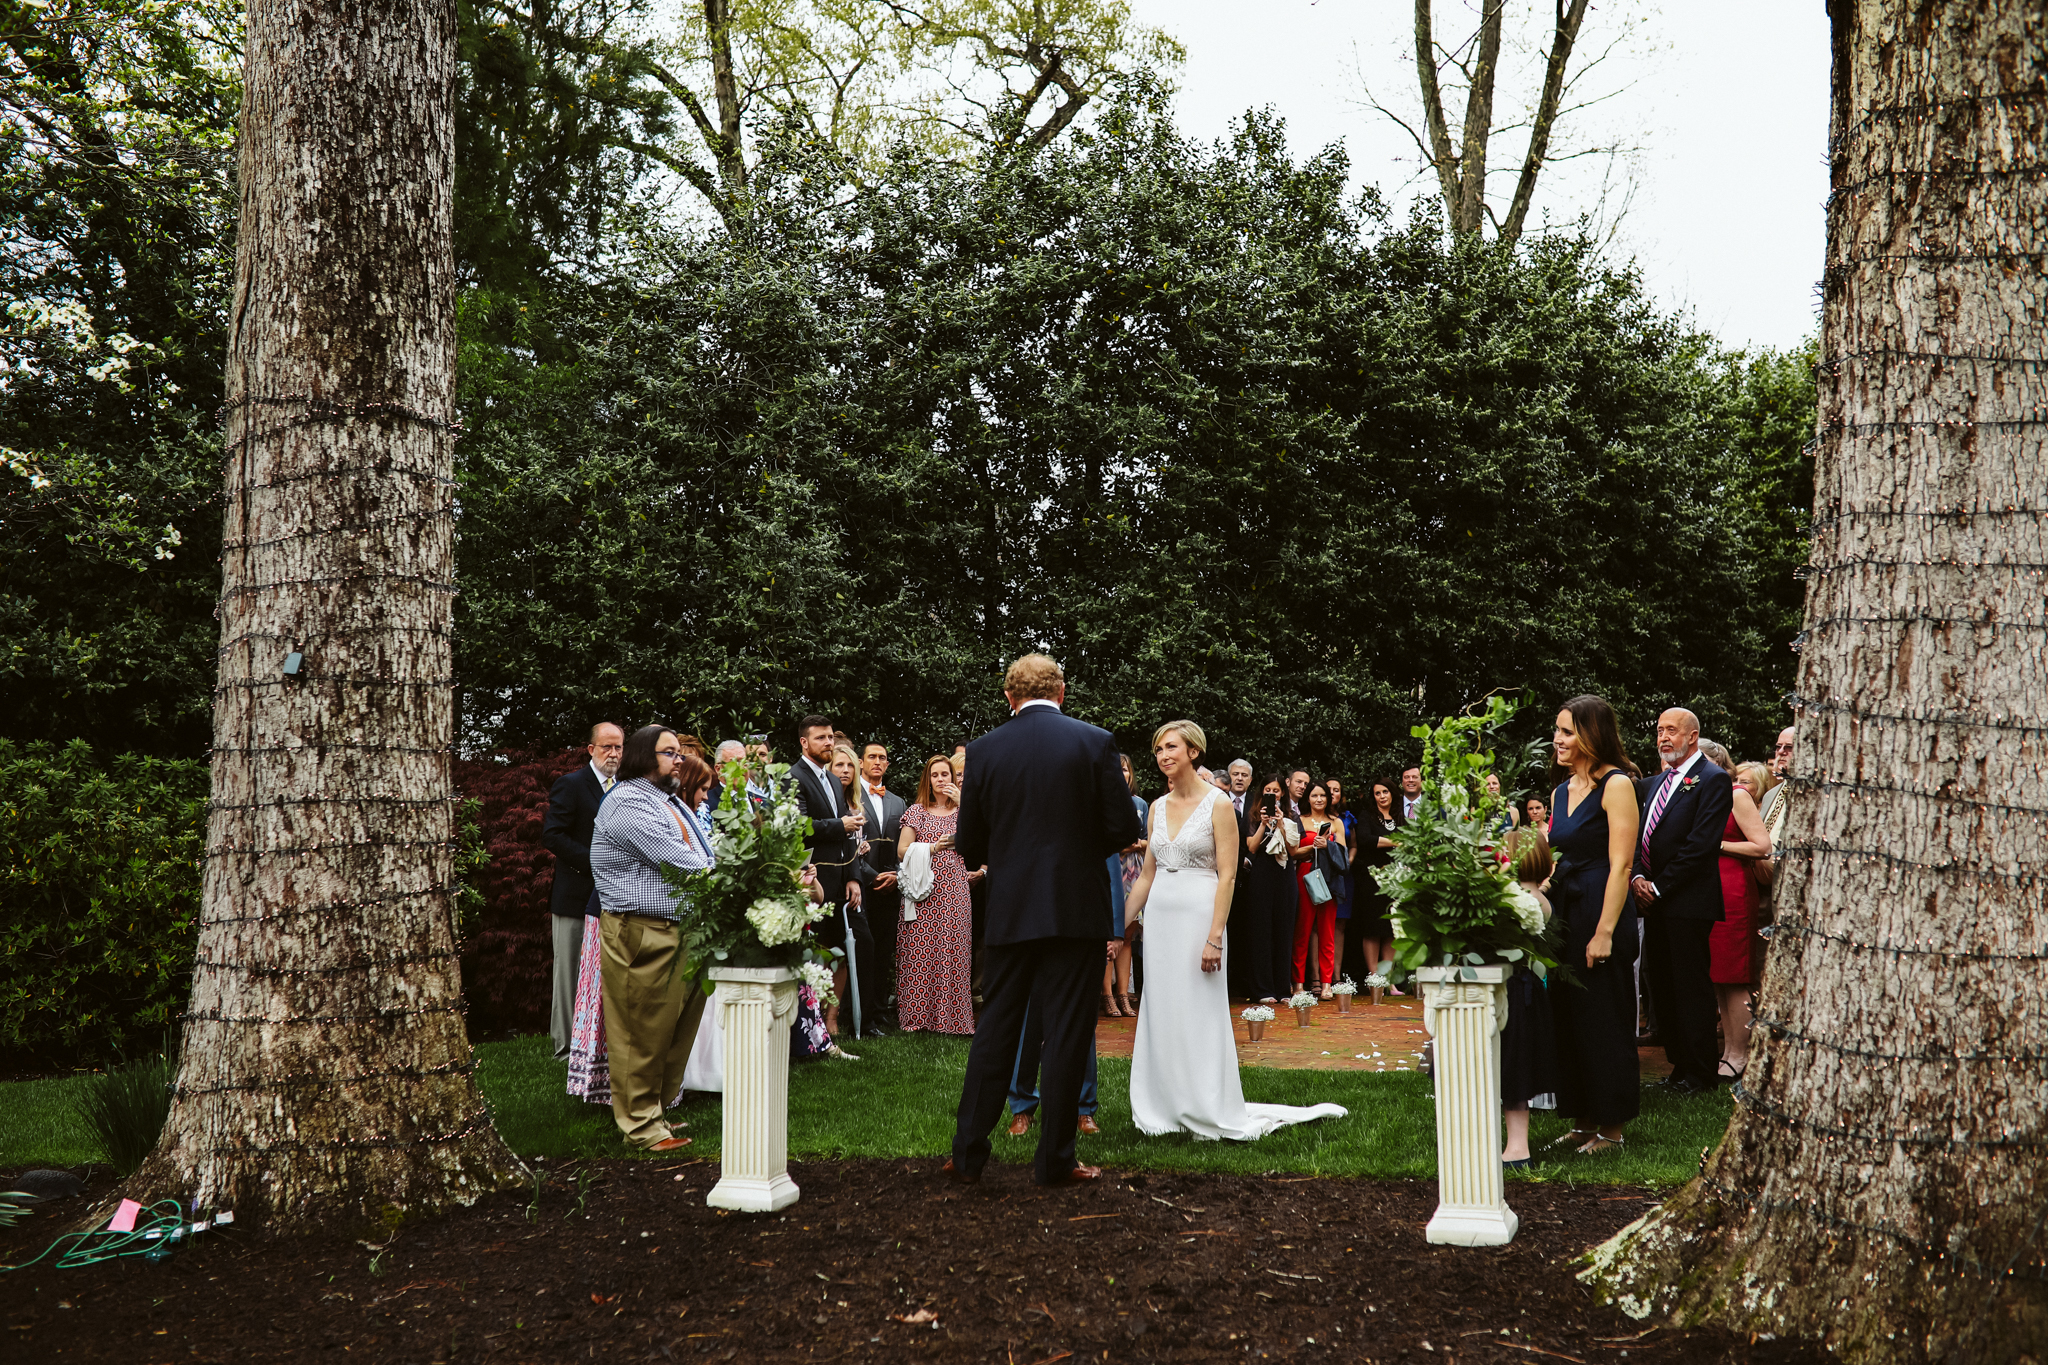 cook_wedding_richmond_virginia_rebecca_burt_photography-30.jpg